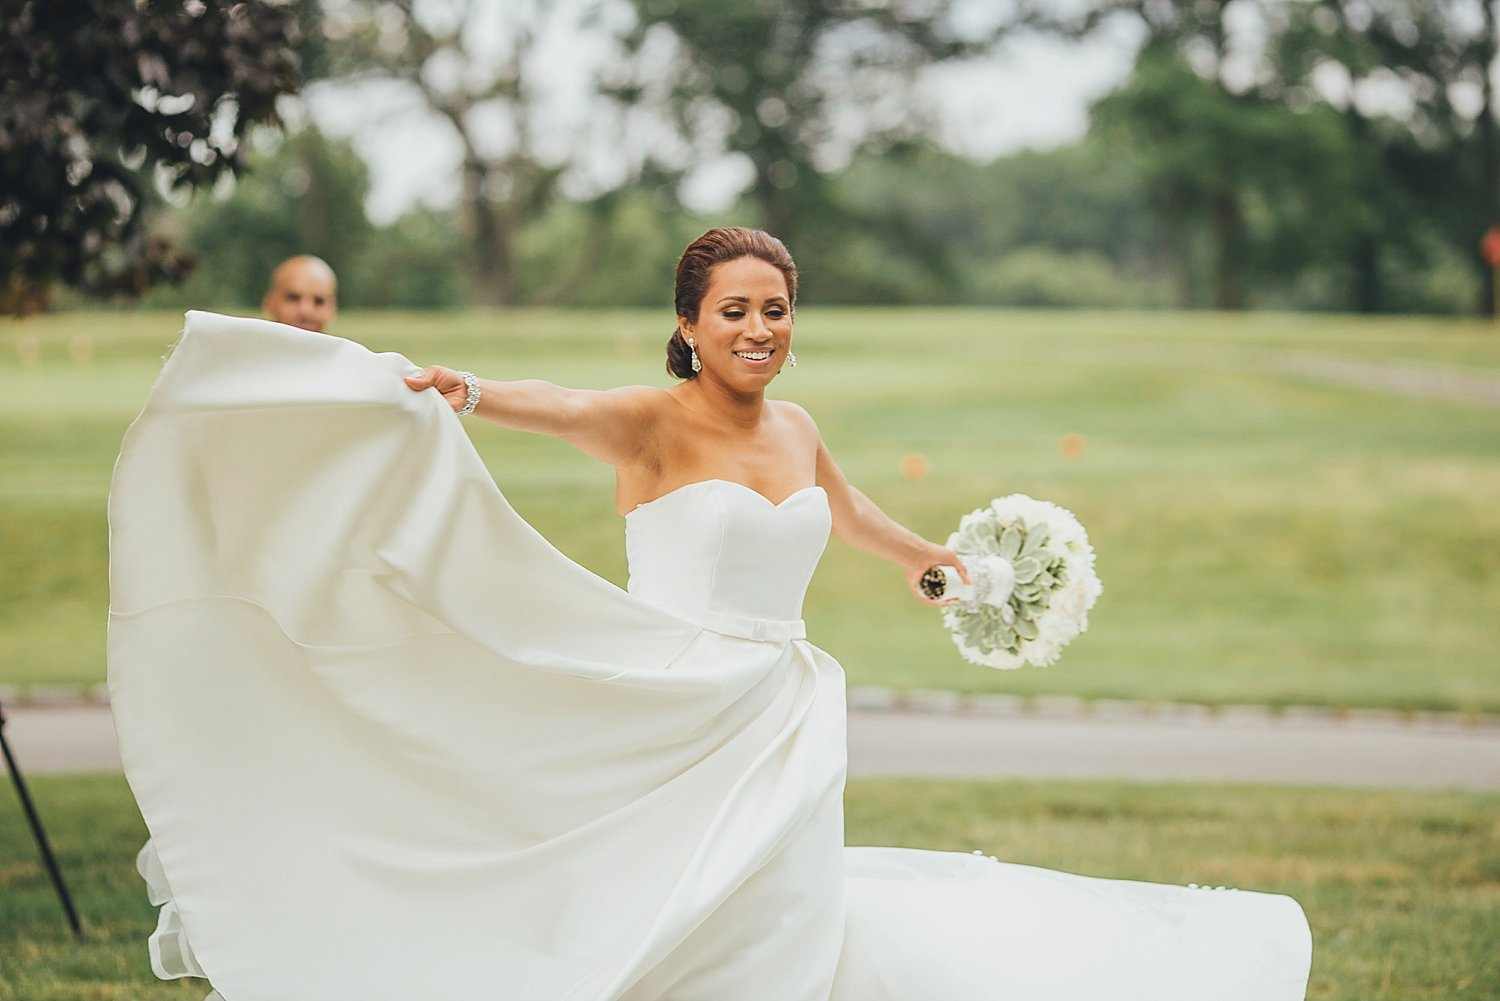 nyc-wedding-photography-nj-tri-state-cinematography-intothestory-by-moo-jae_0301.jpg